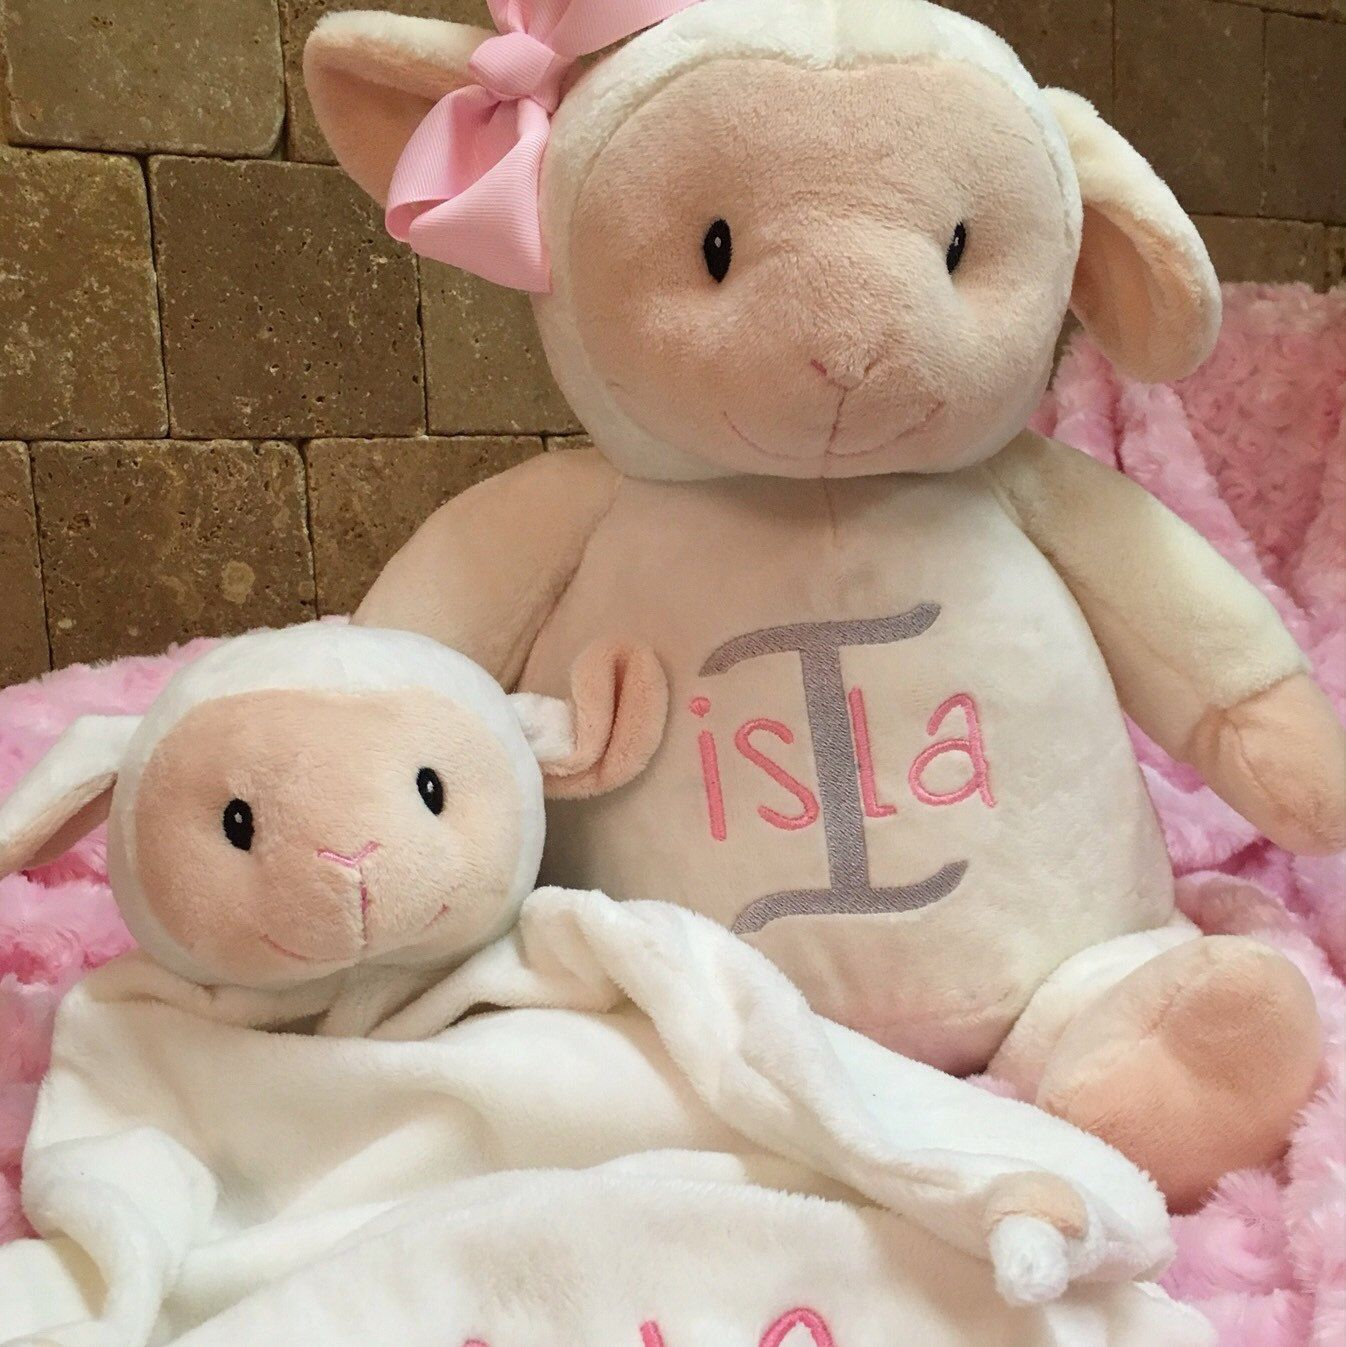 Lambpersonalized baby gift stuffed animal birth announcement lambpersonalized baby gift stuffed animal birth announcement new baby gift baptismal monogrammed embroidered adoption gotcha negle Image collections